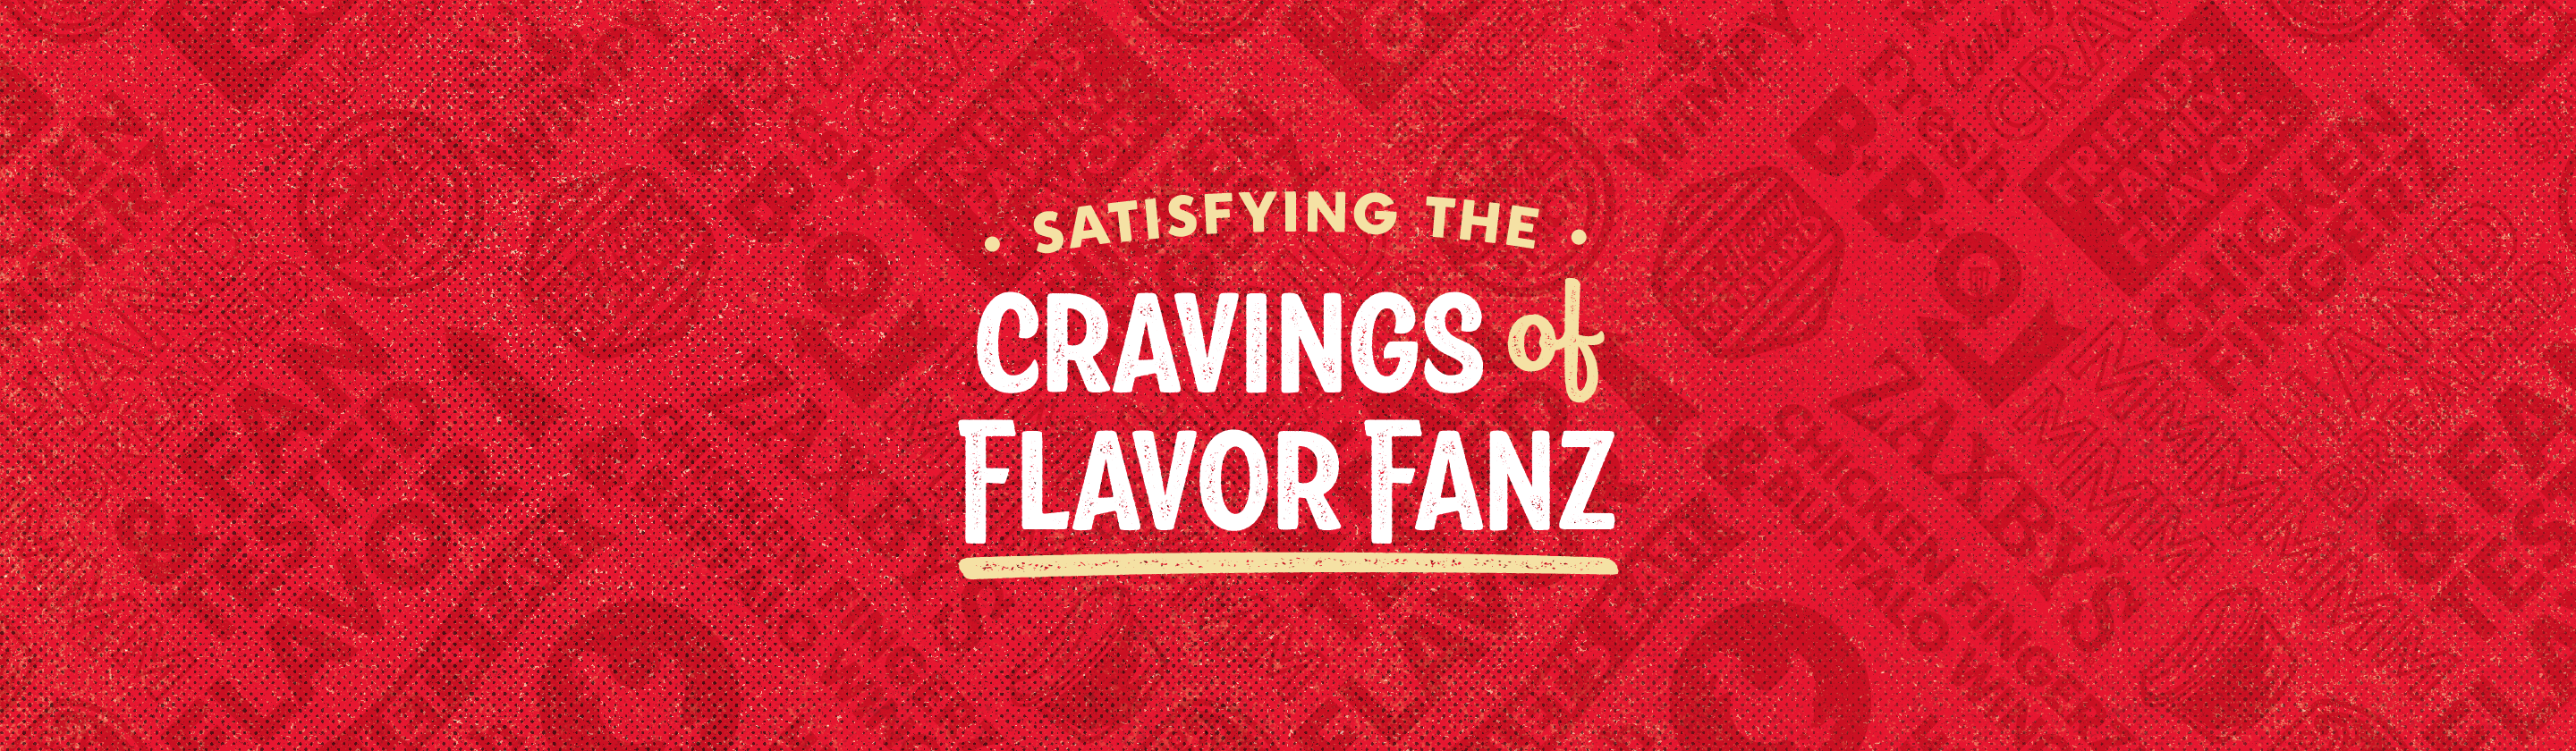 Satisfying the cravings of flavor fanz